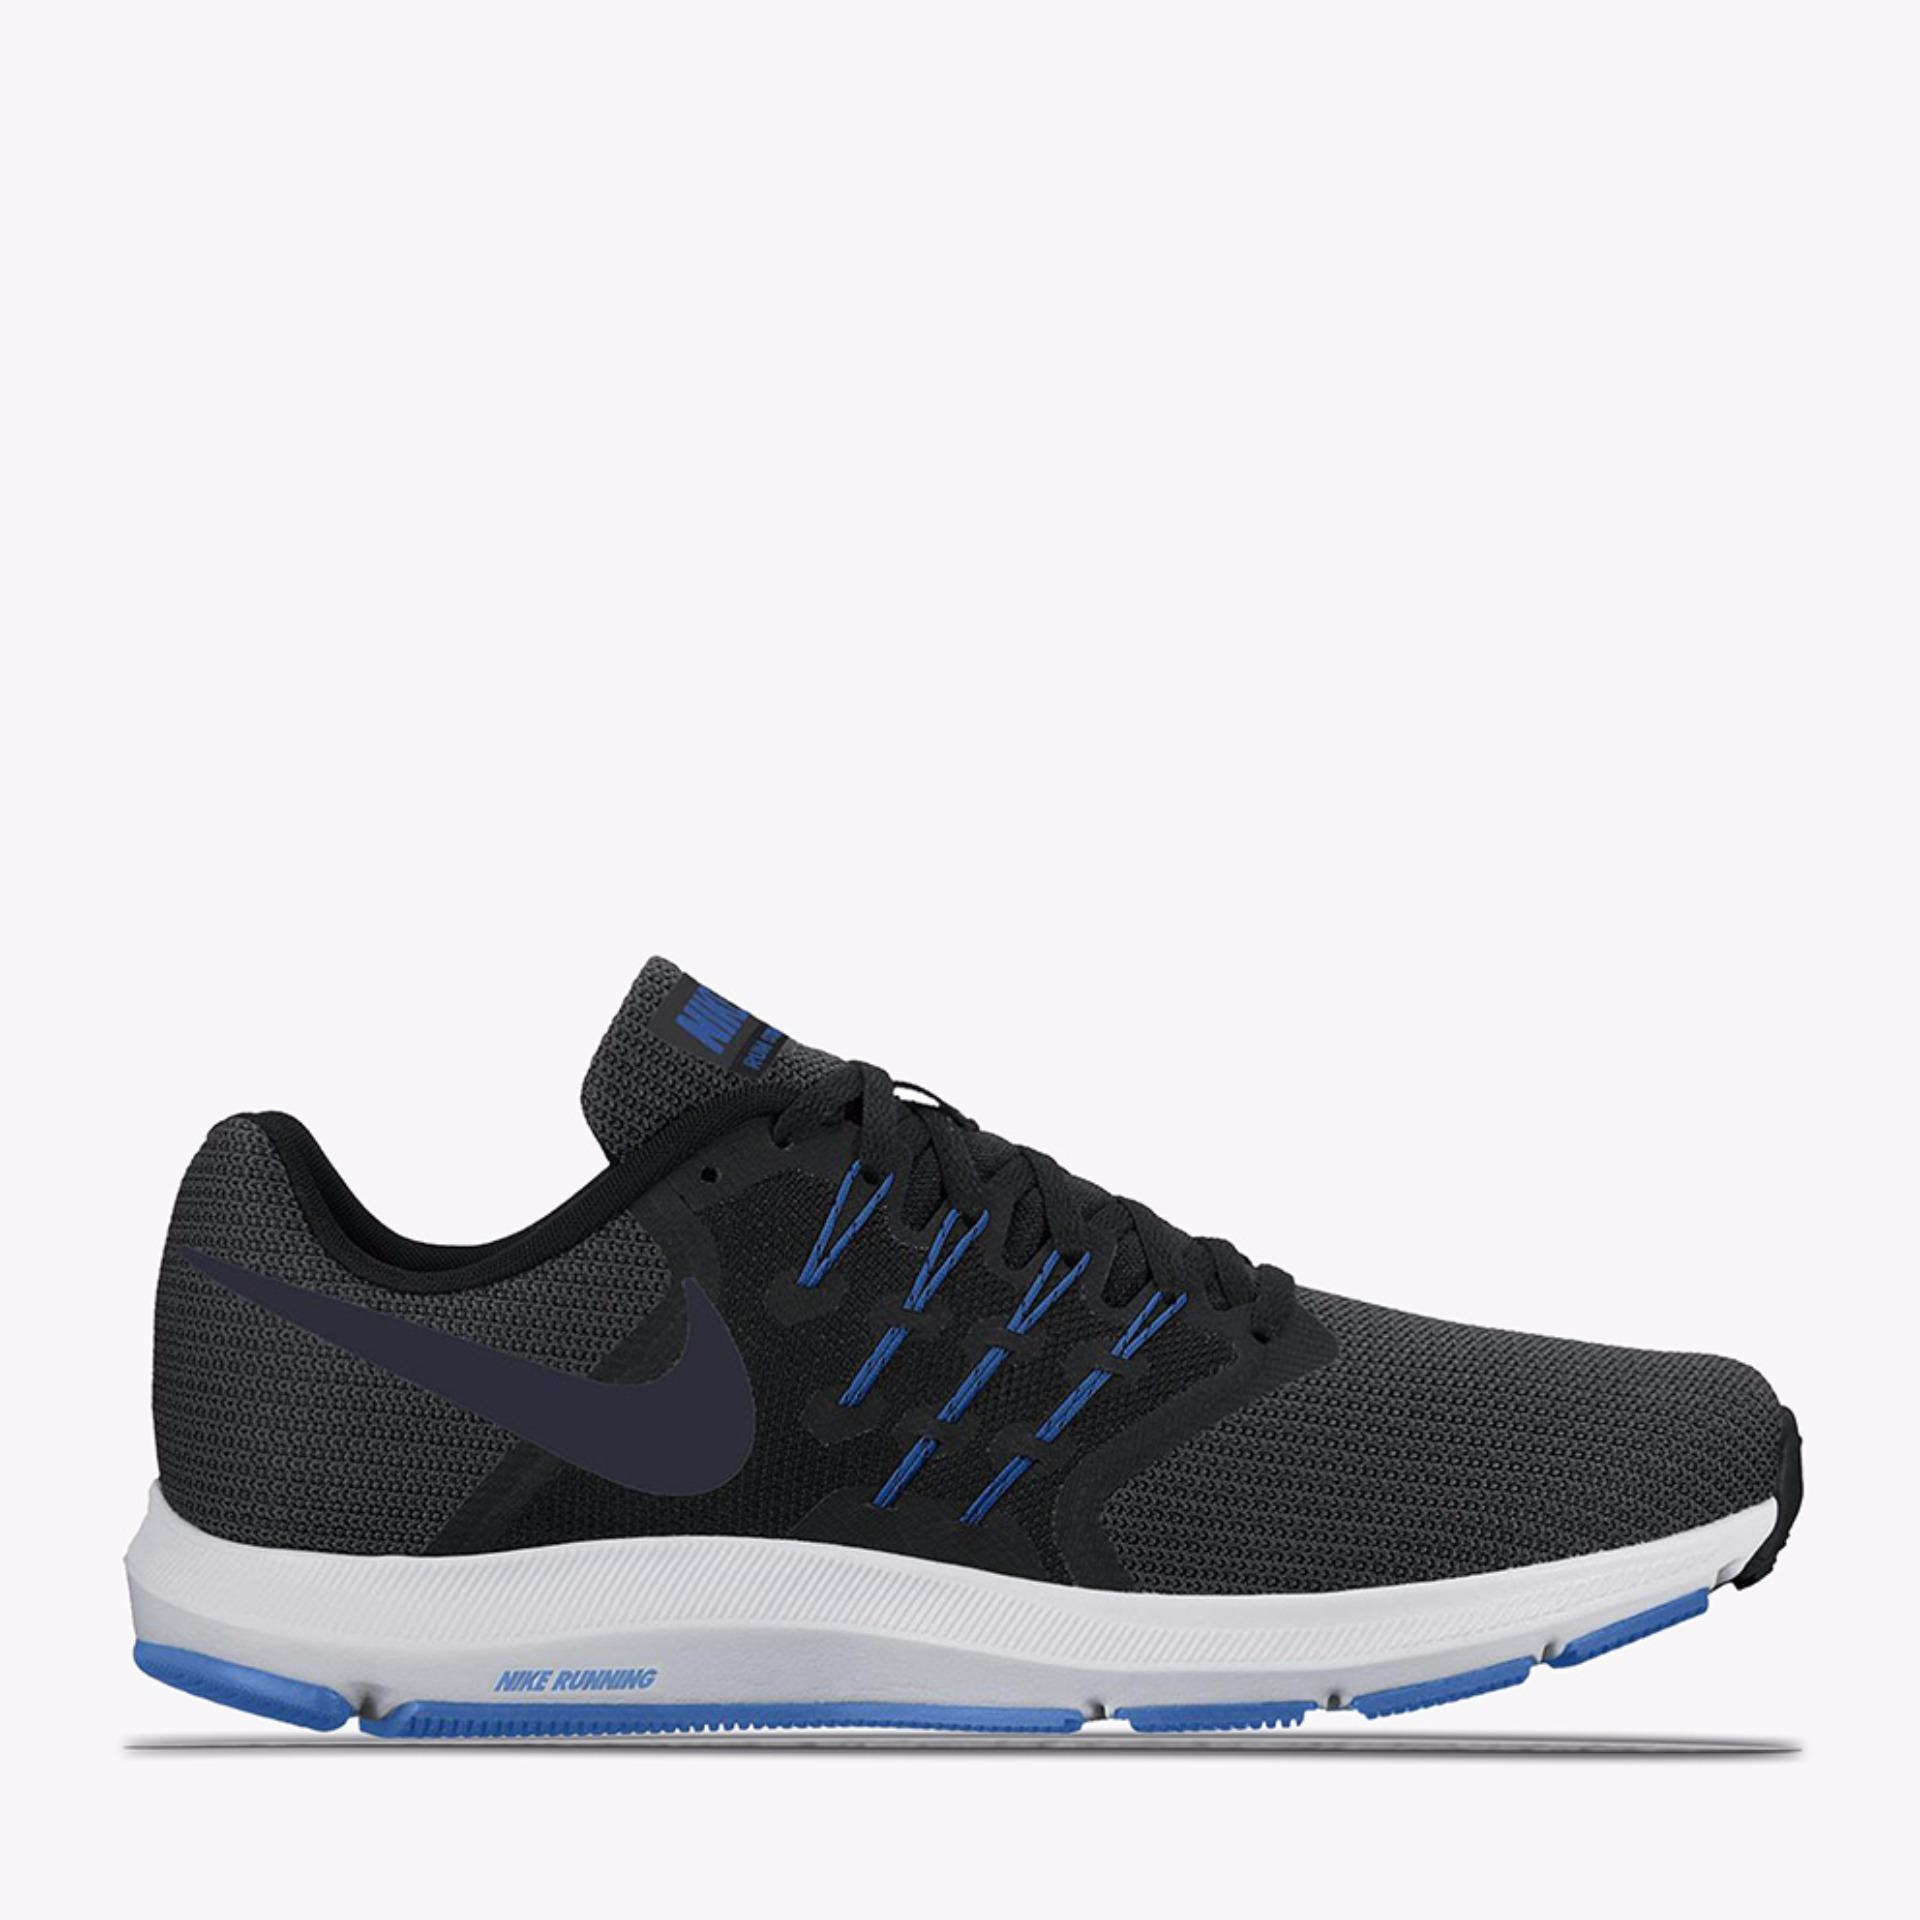 Harga Nike Run Swift Men S Running Shoes Hitam Terbaru